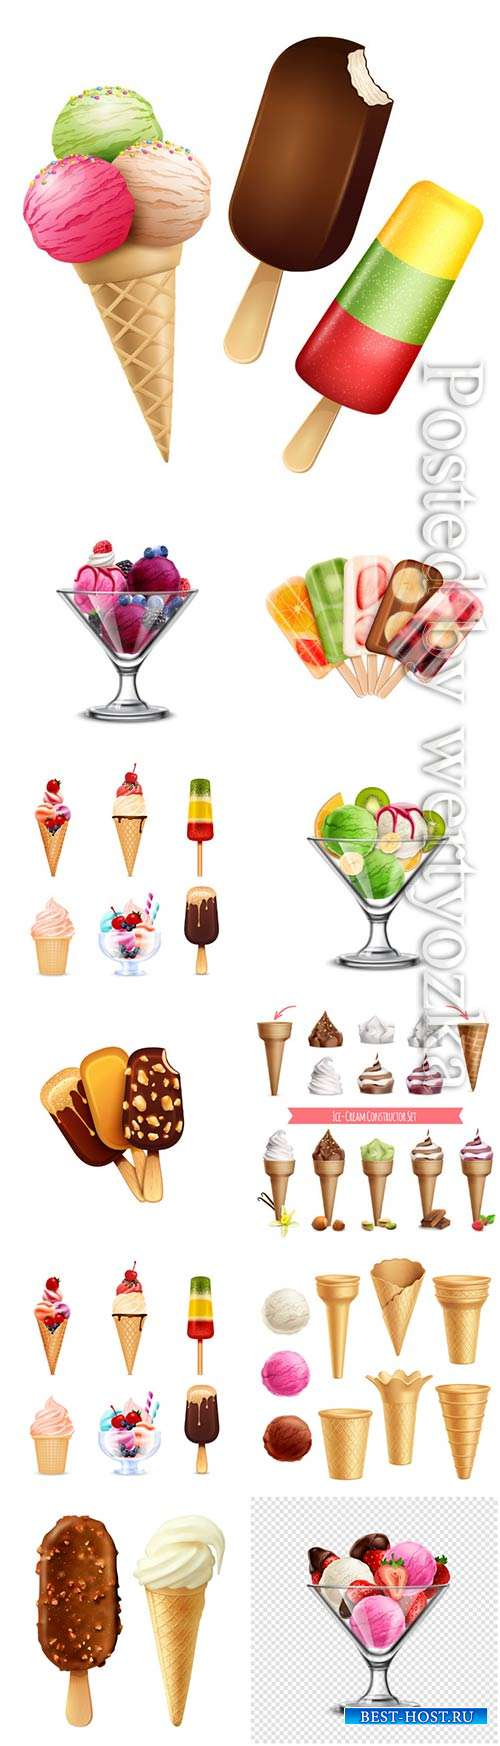 Ice cream platter, chocolate and vanilla ice cream with berries in vector